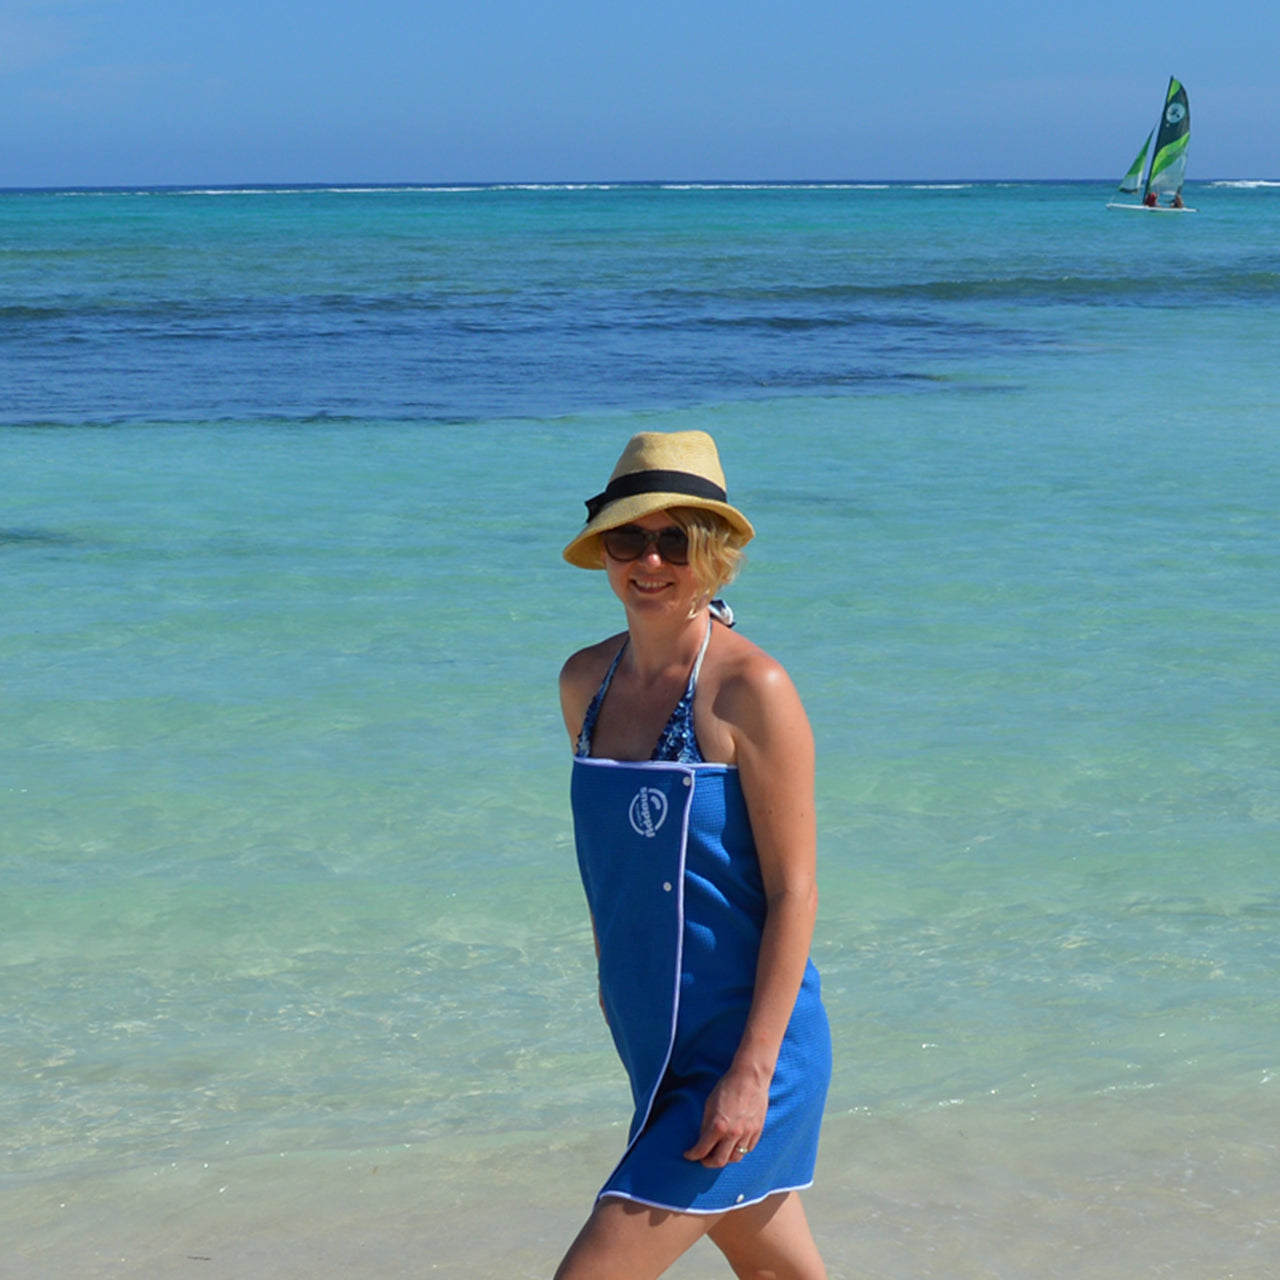 snappy woman beach microfiber lifestyle